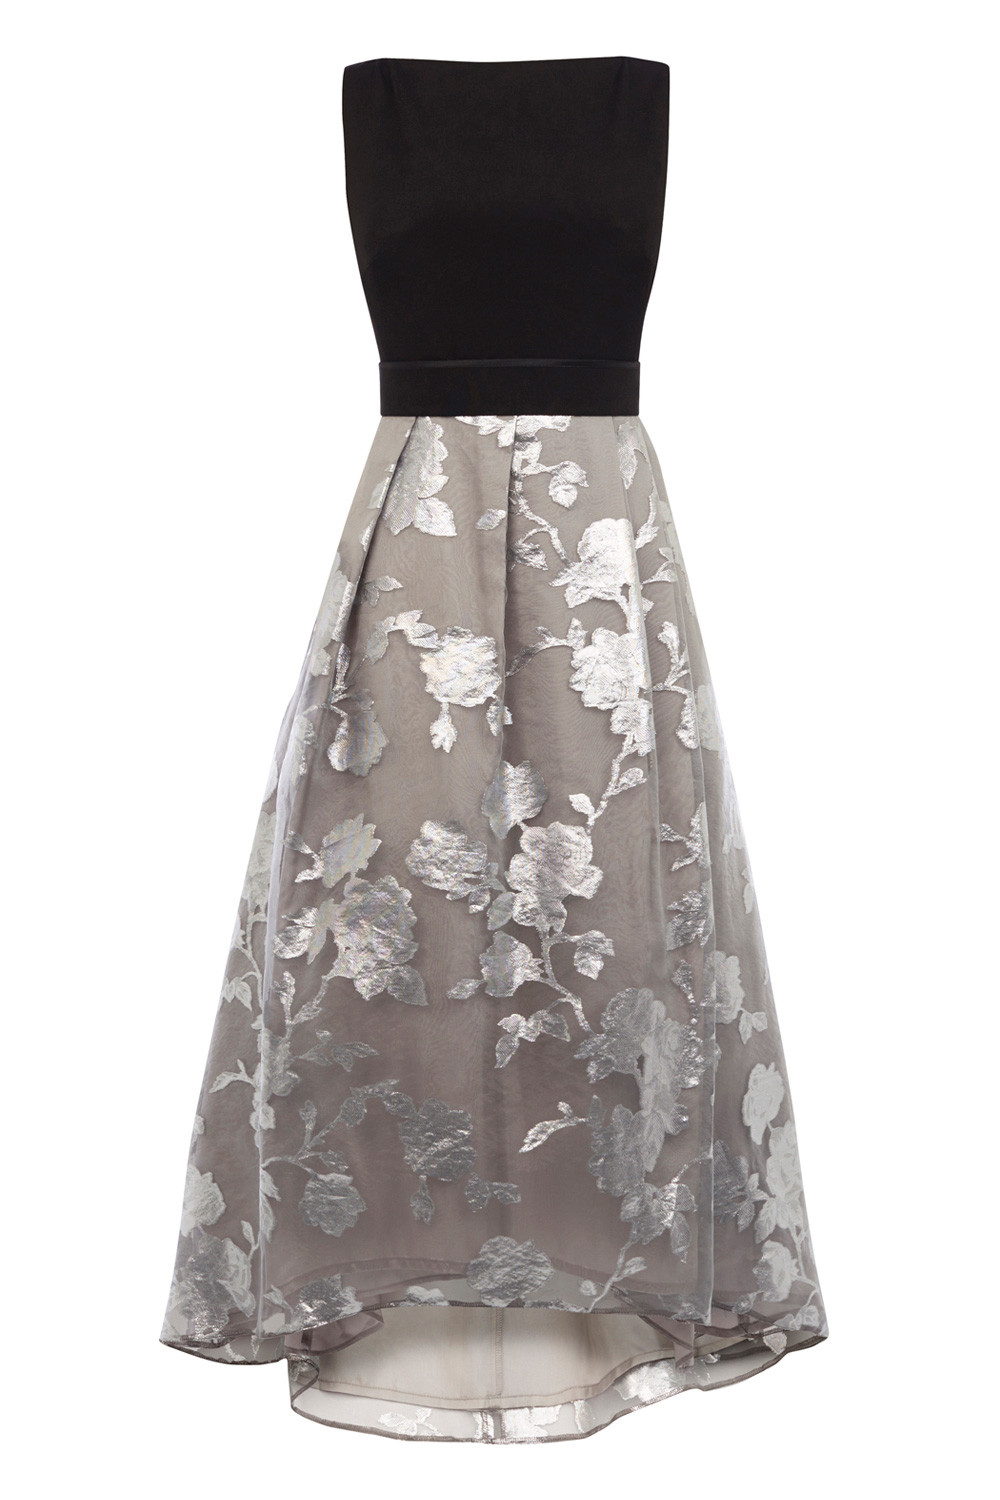 No. 2 in Christmas eve outfits : Roccobella Dress @ £195.00